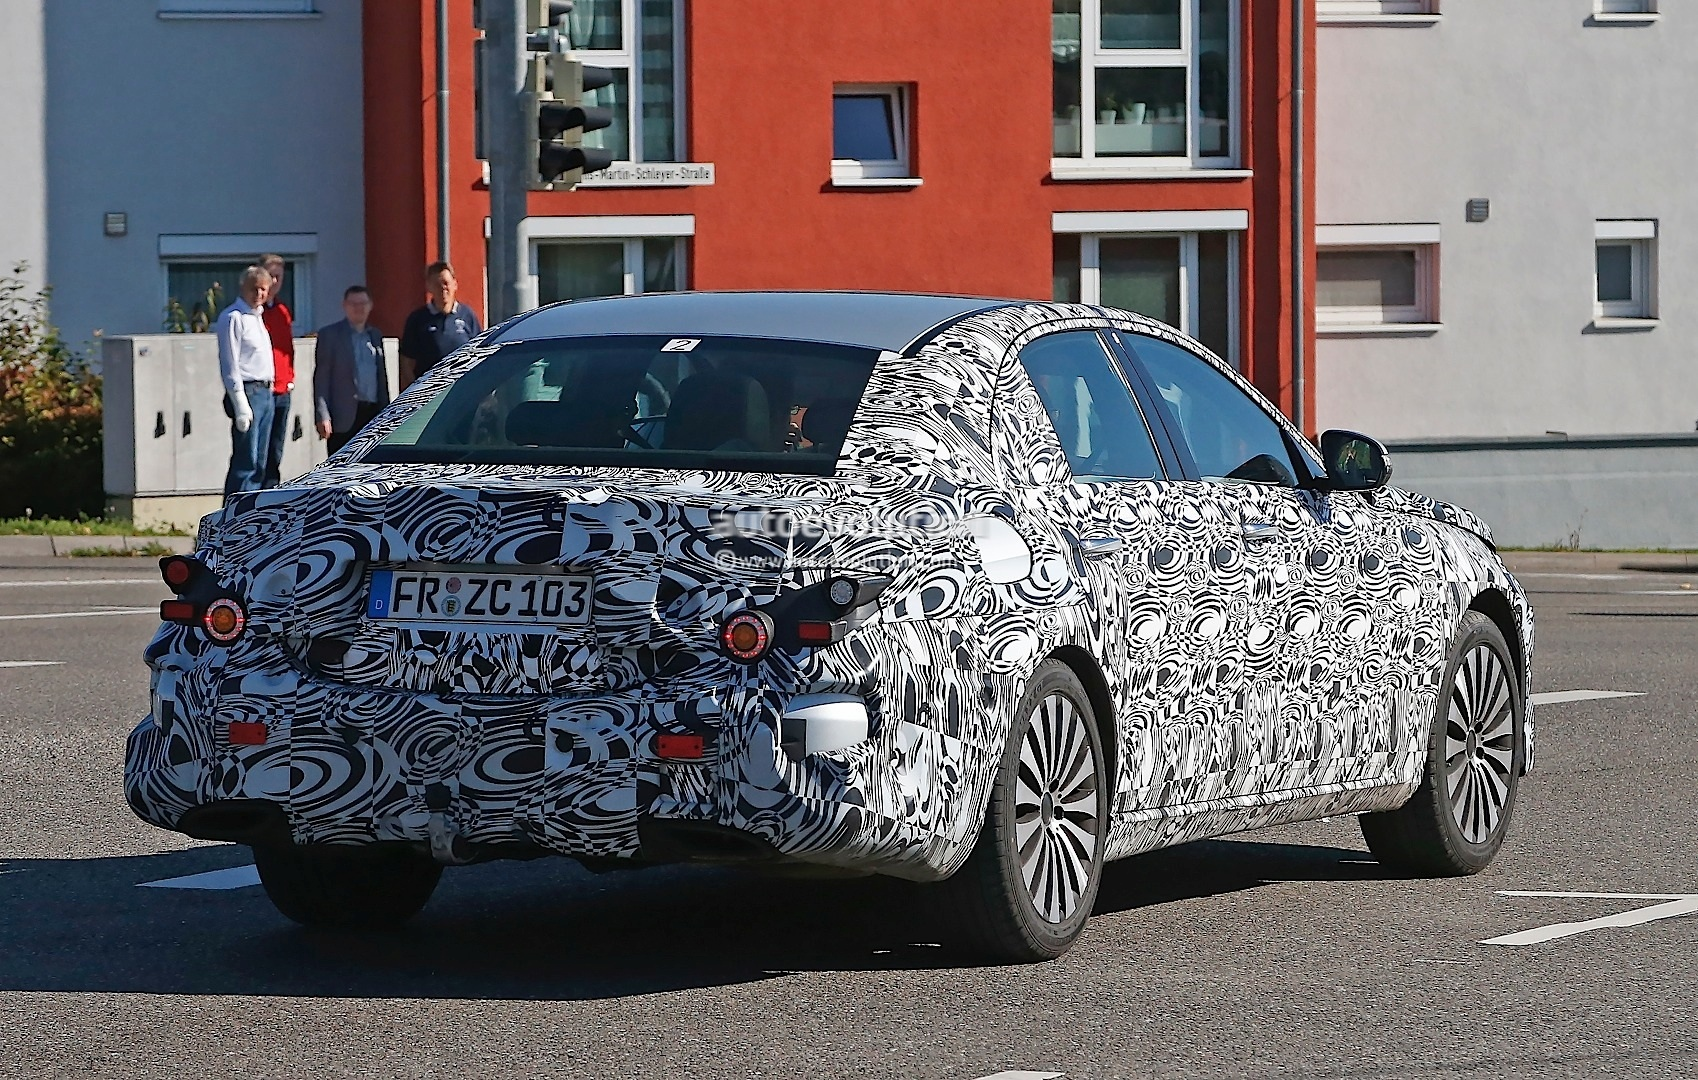 new-2017-mercedes-e-class-spied-here-are-the-close-up-details_5